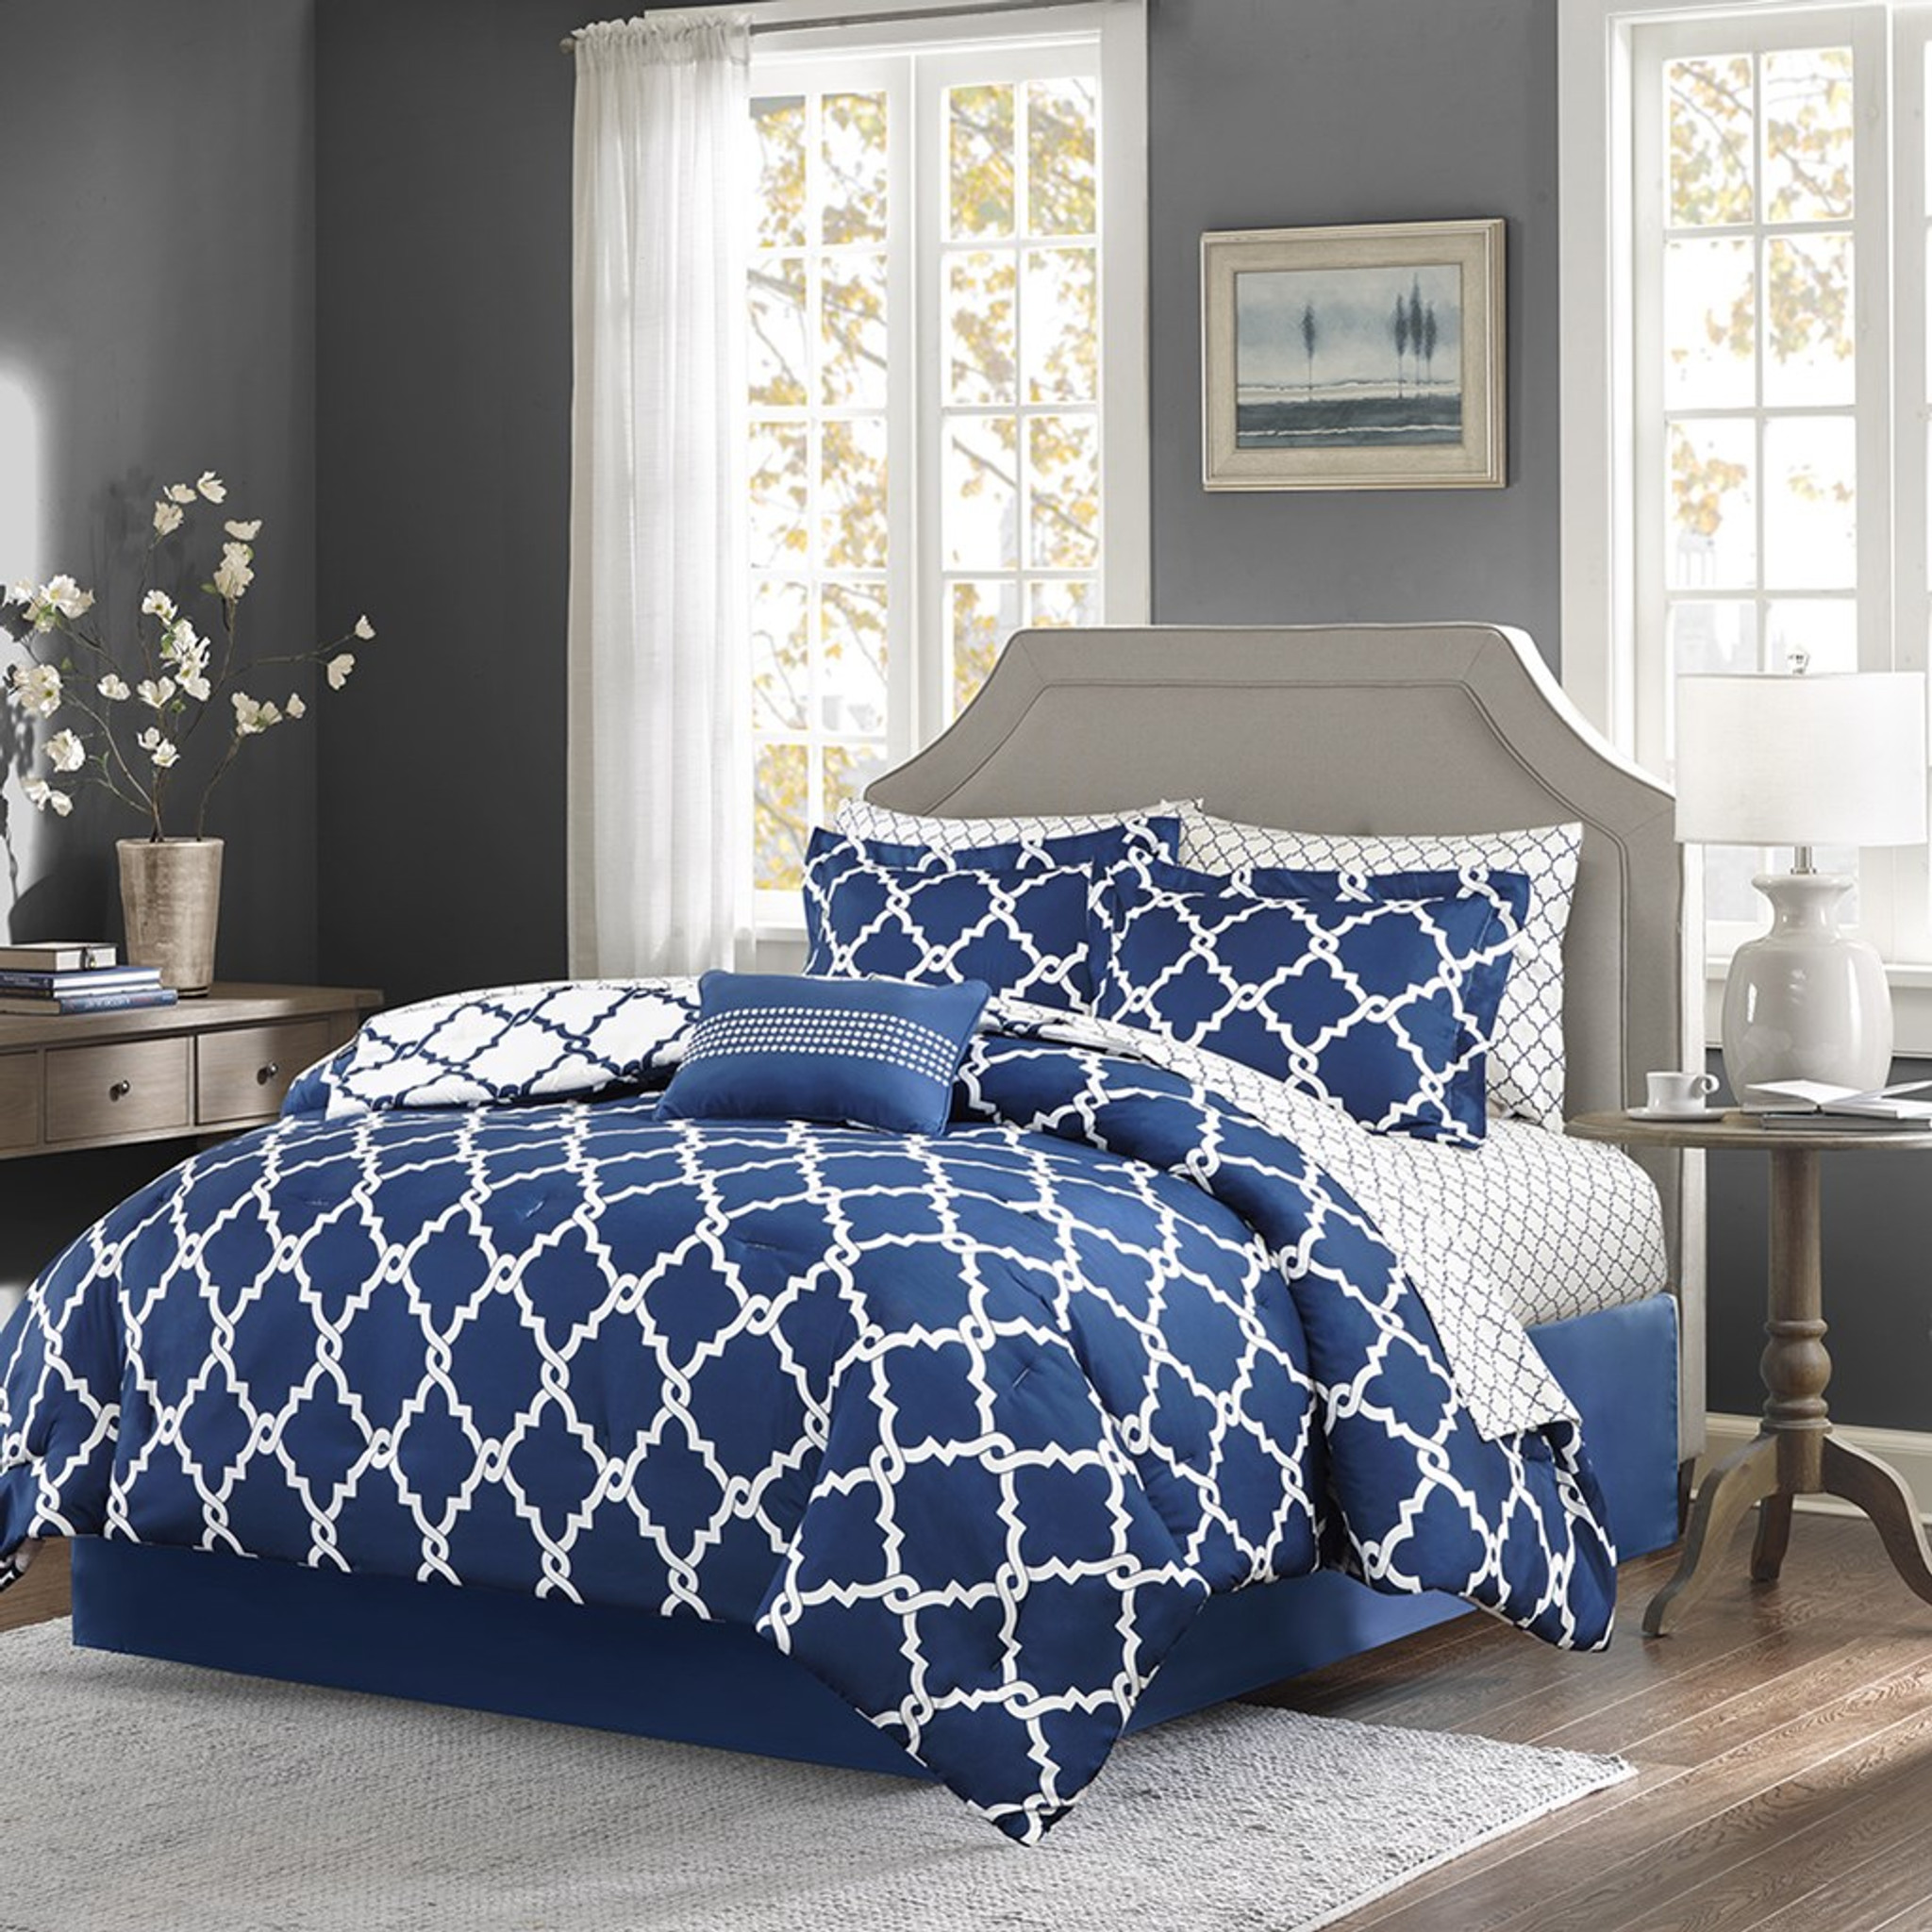 Navy Blue And White Fretwork Comforter Set Queen Size Caron S